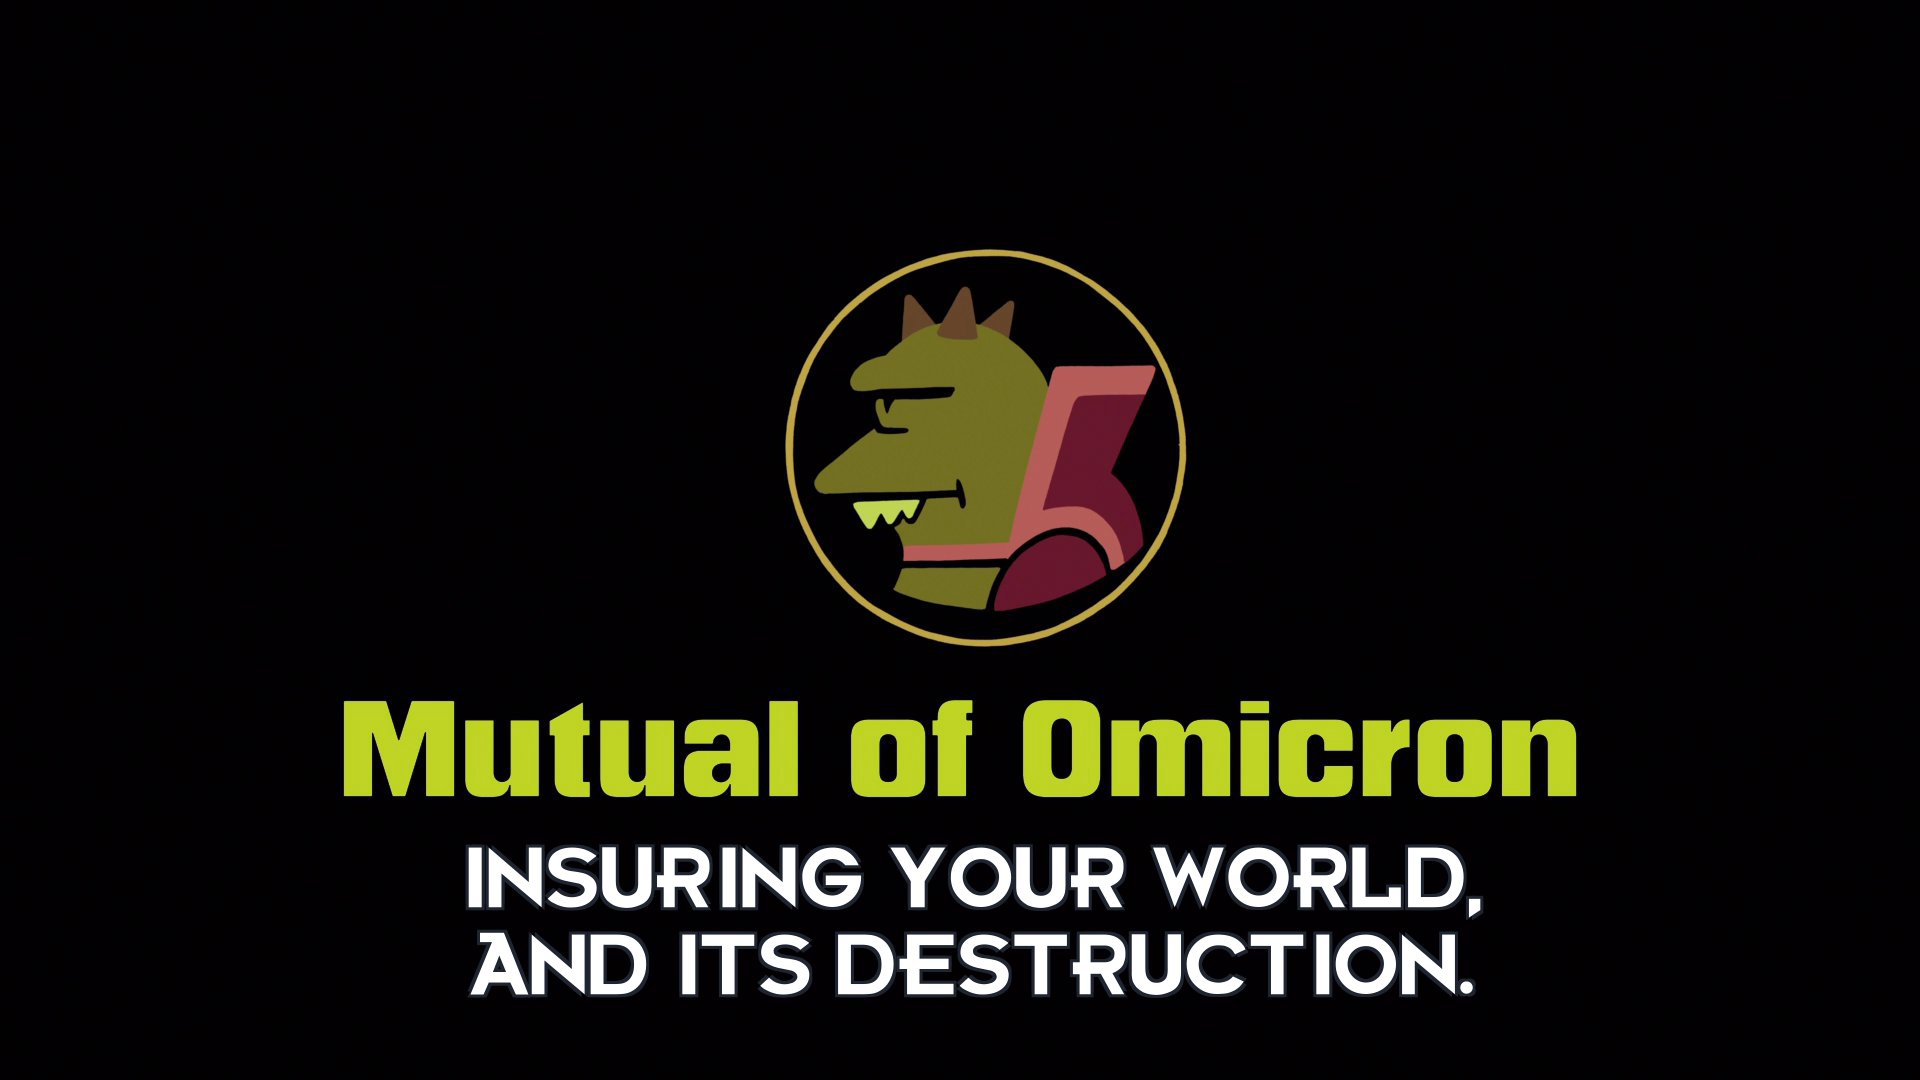 Announcer: Insuring your world, and its destruction.